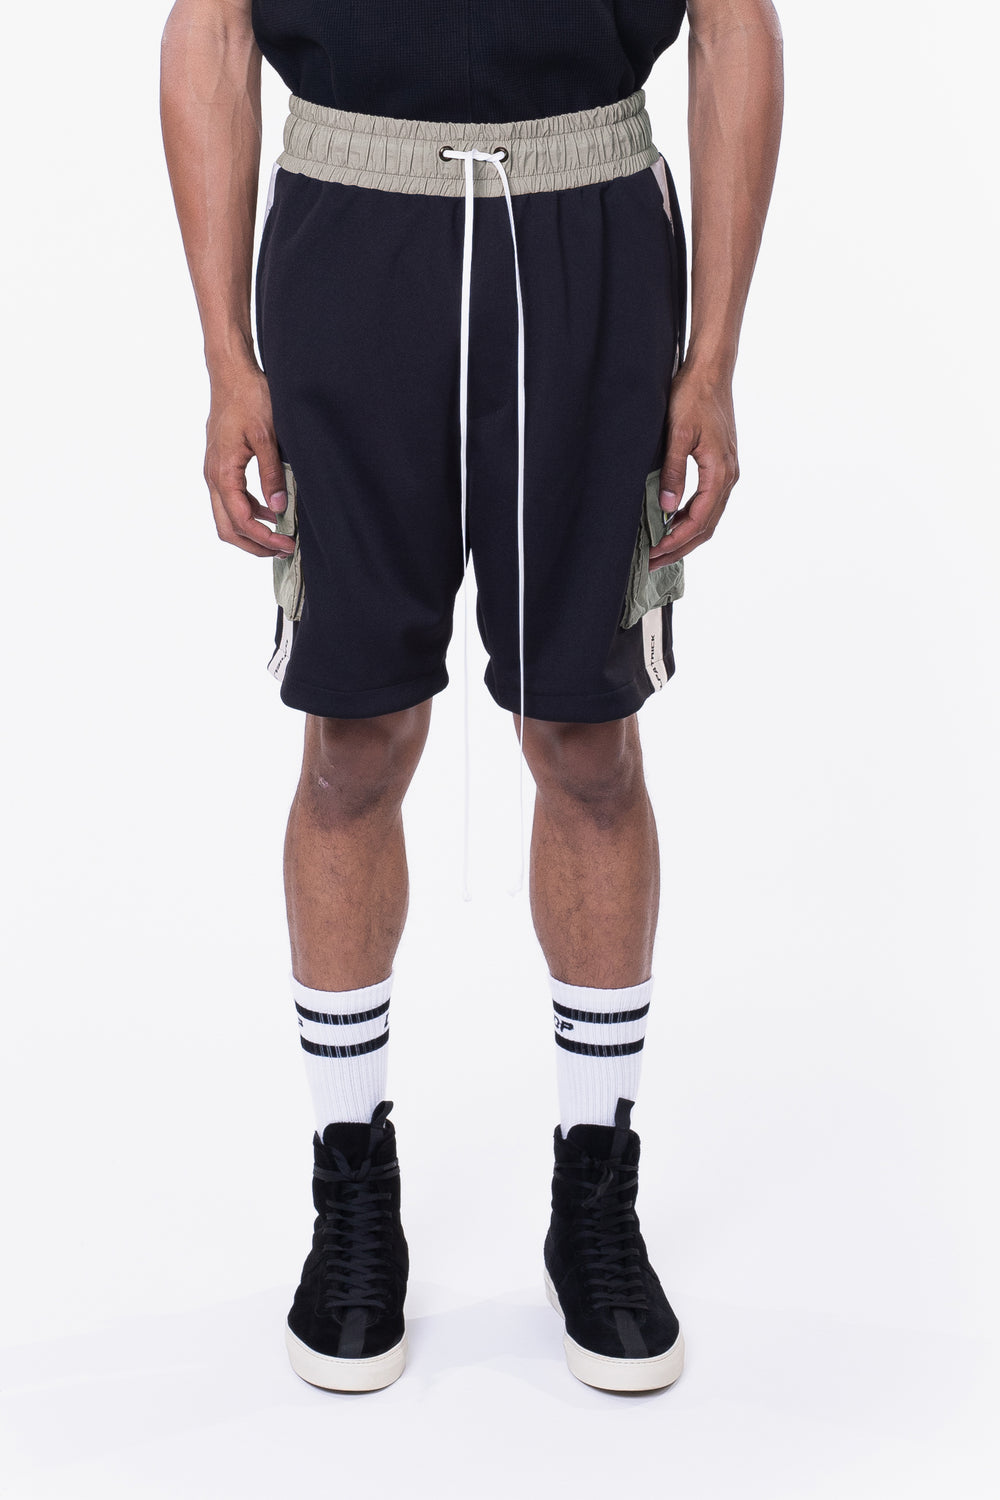 cargo gym short / black + ivory + smog grey